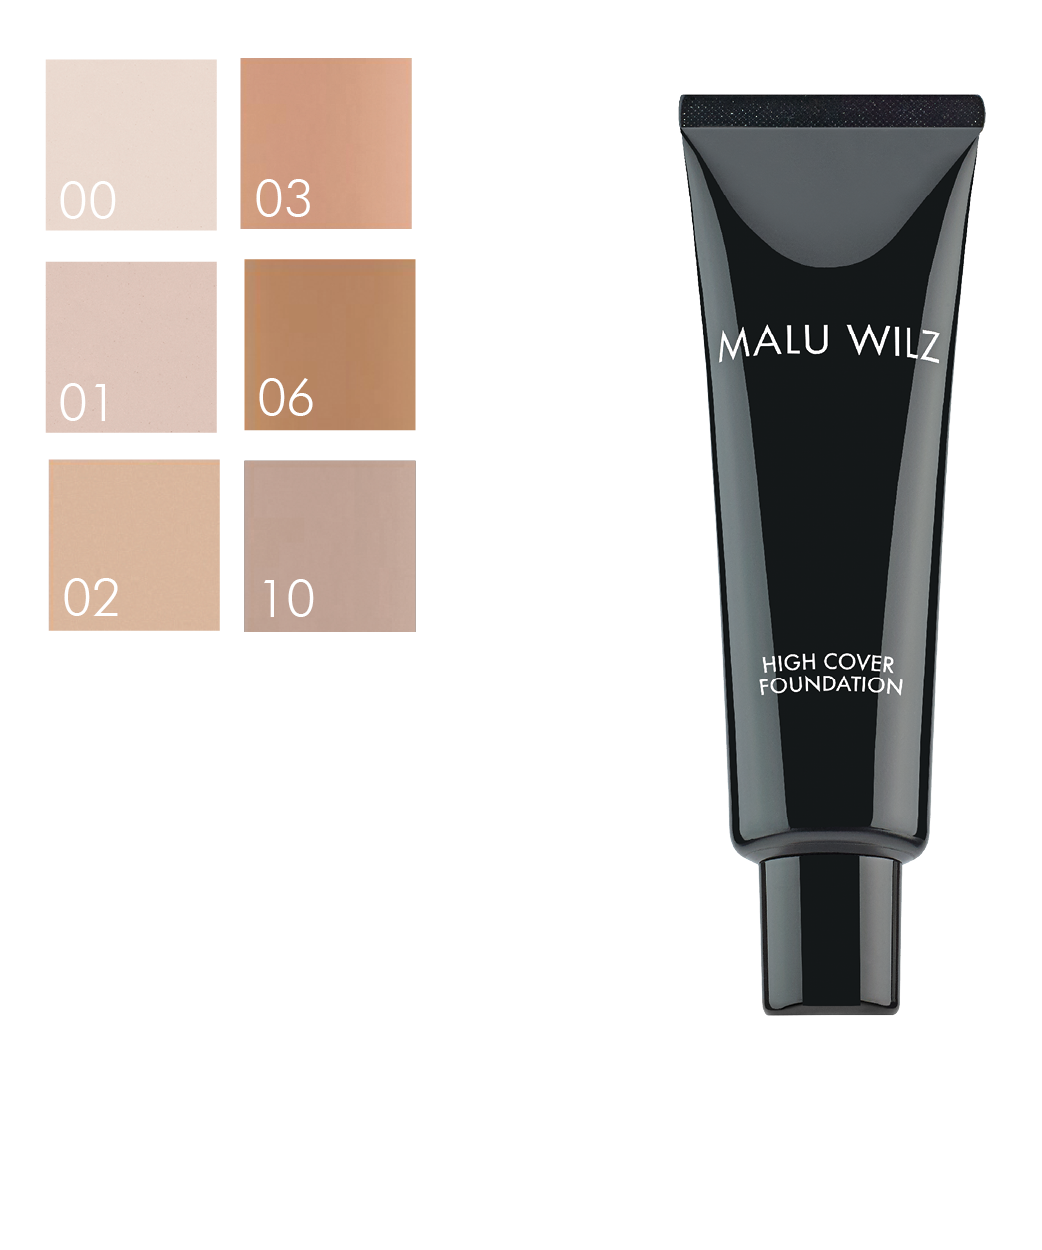 High Cover Foundation 30 ml